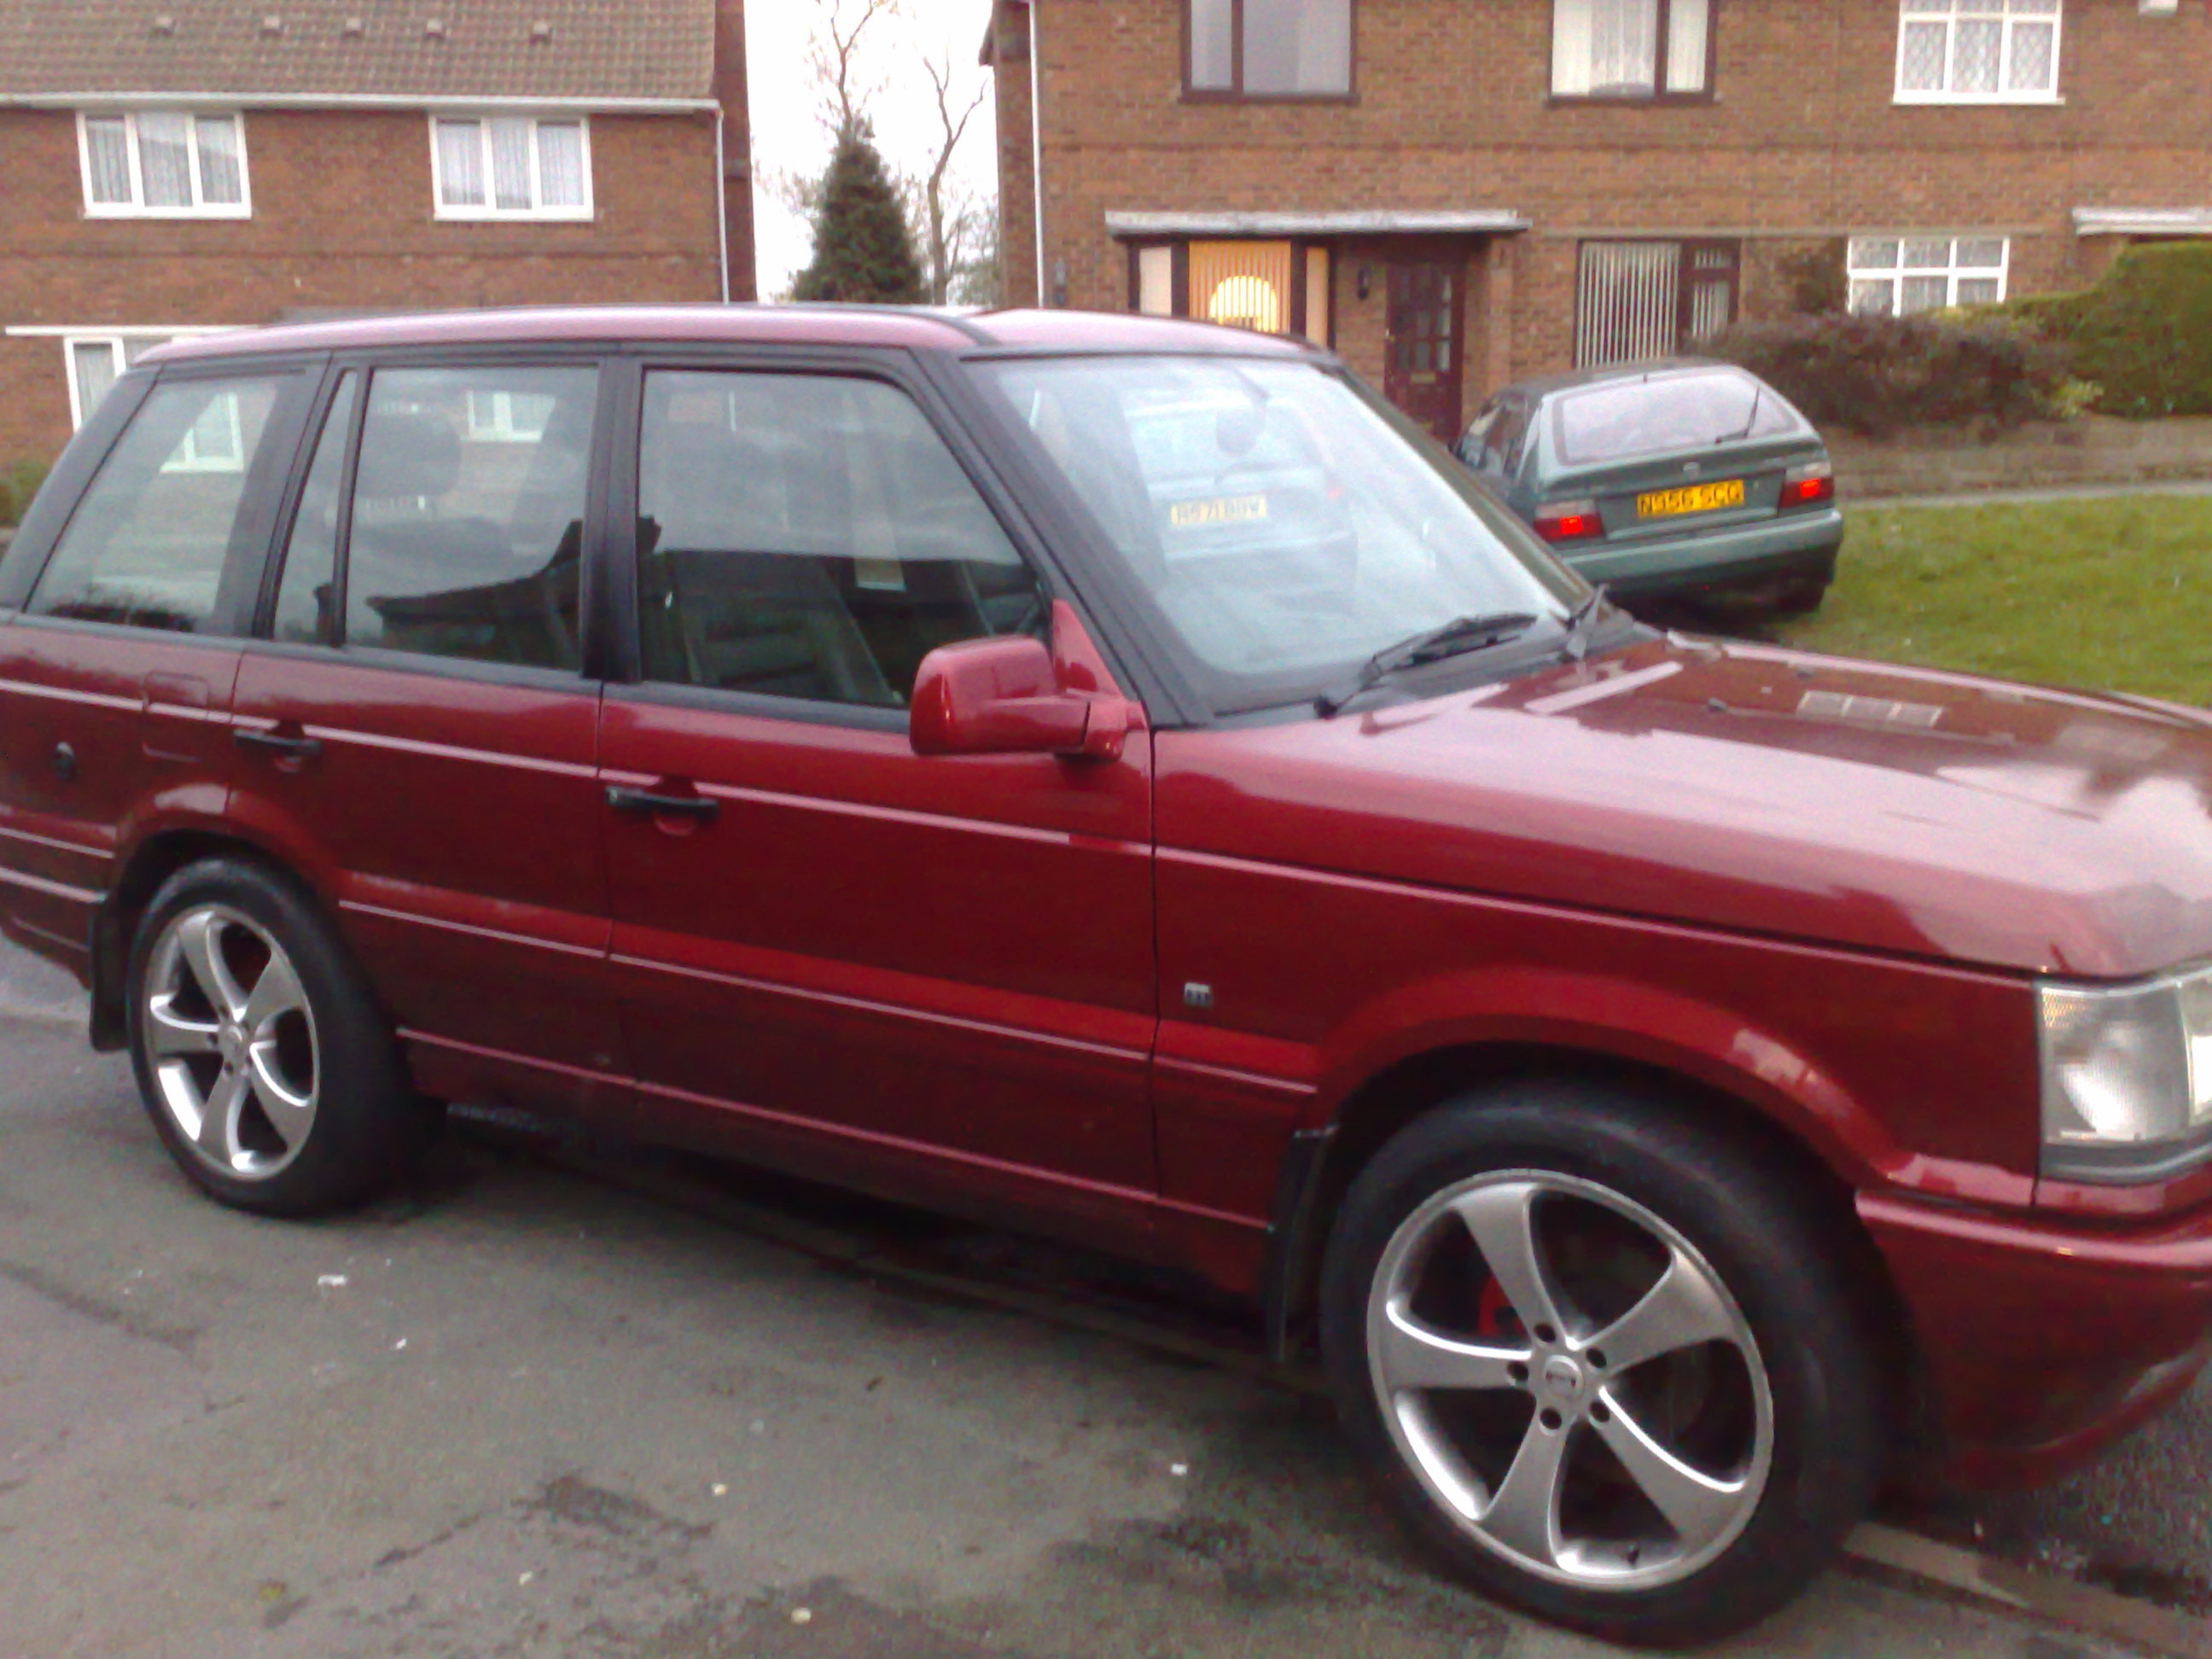 1997 Land Rover Range Rover 4 0 SE Sport Utility 4D Page 2 View